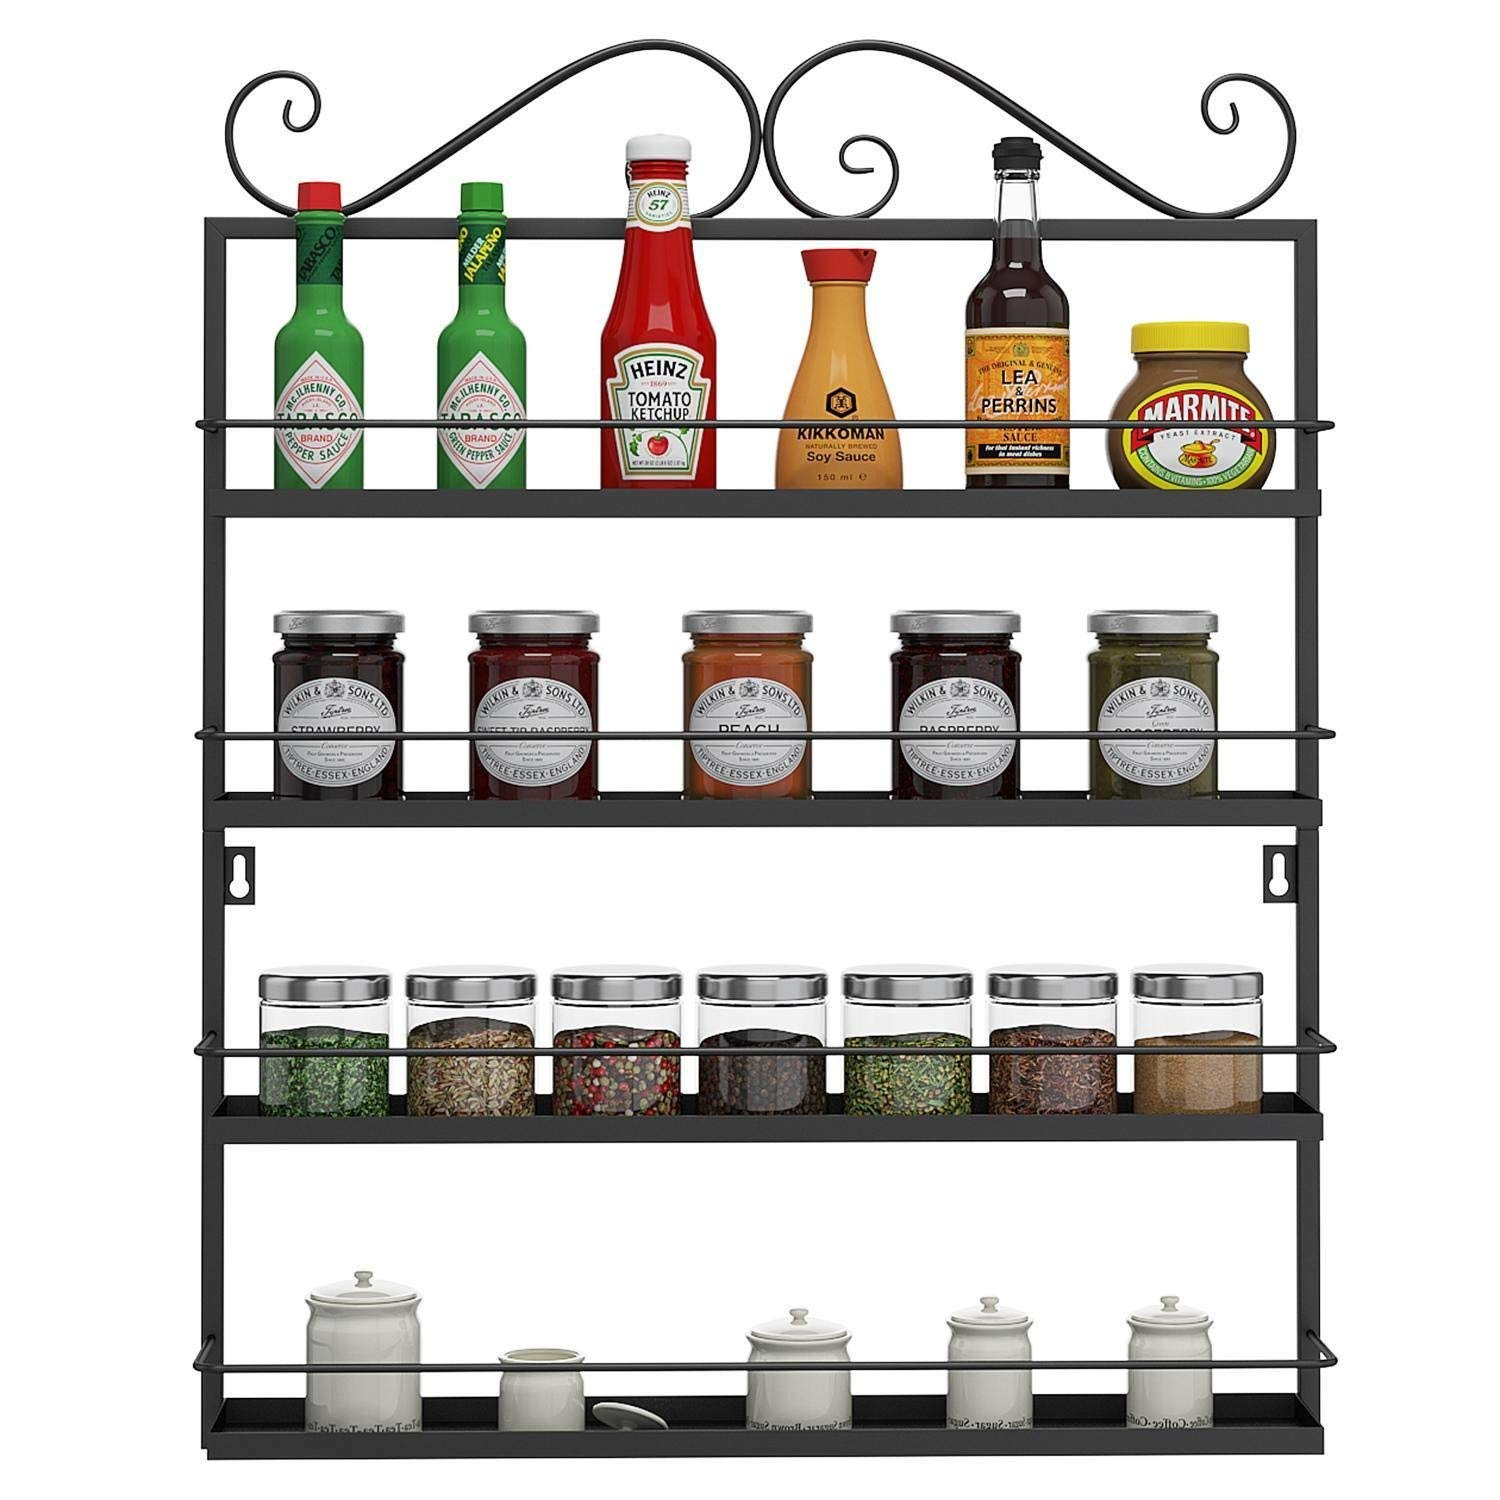 Utheing Durable Multifunctional Metal Kitchen Condiments Storage Shelves, Wall Mounted Storage Rack, Great for Storing Spices, Household Items (black) by Utheing